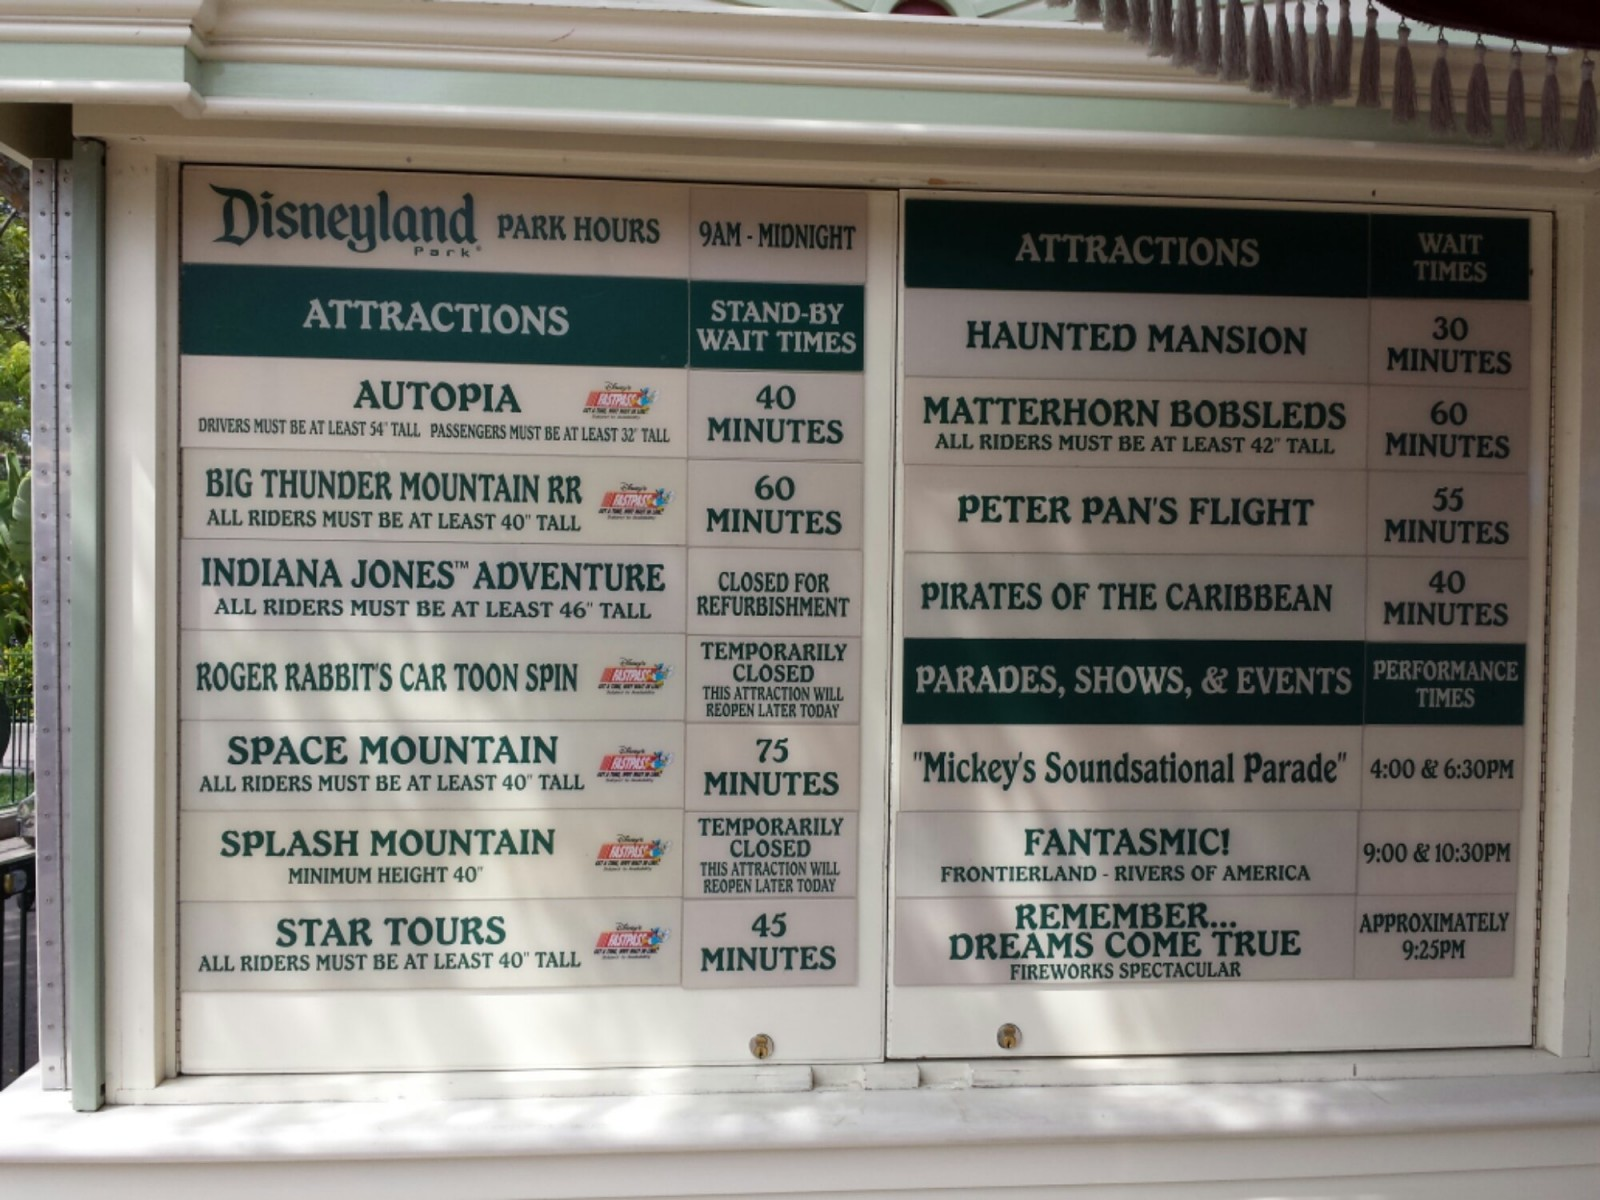 #Disneyland wait times around 1:50pm